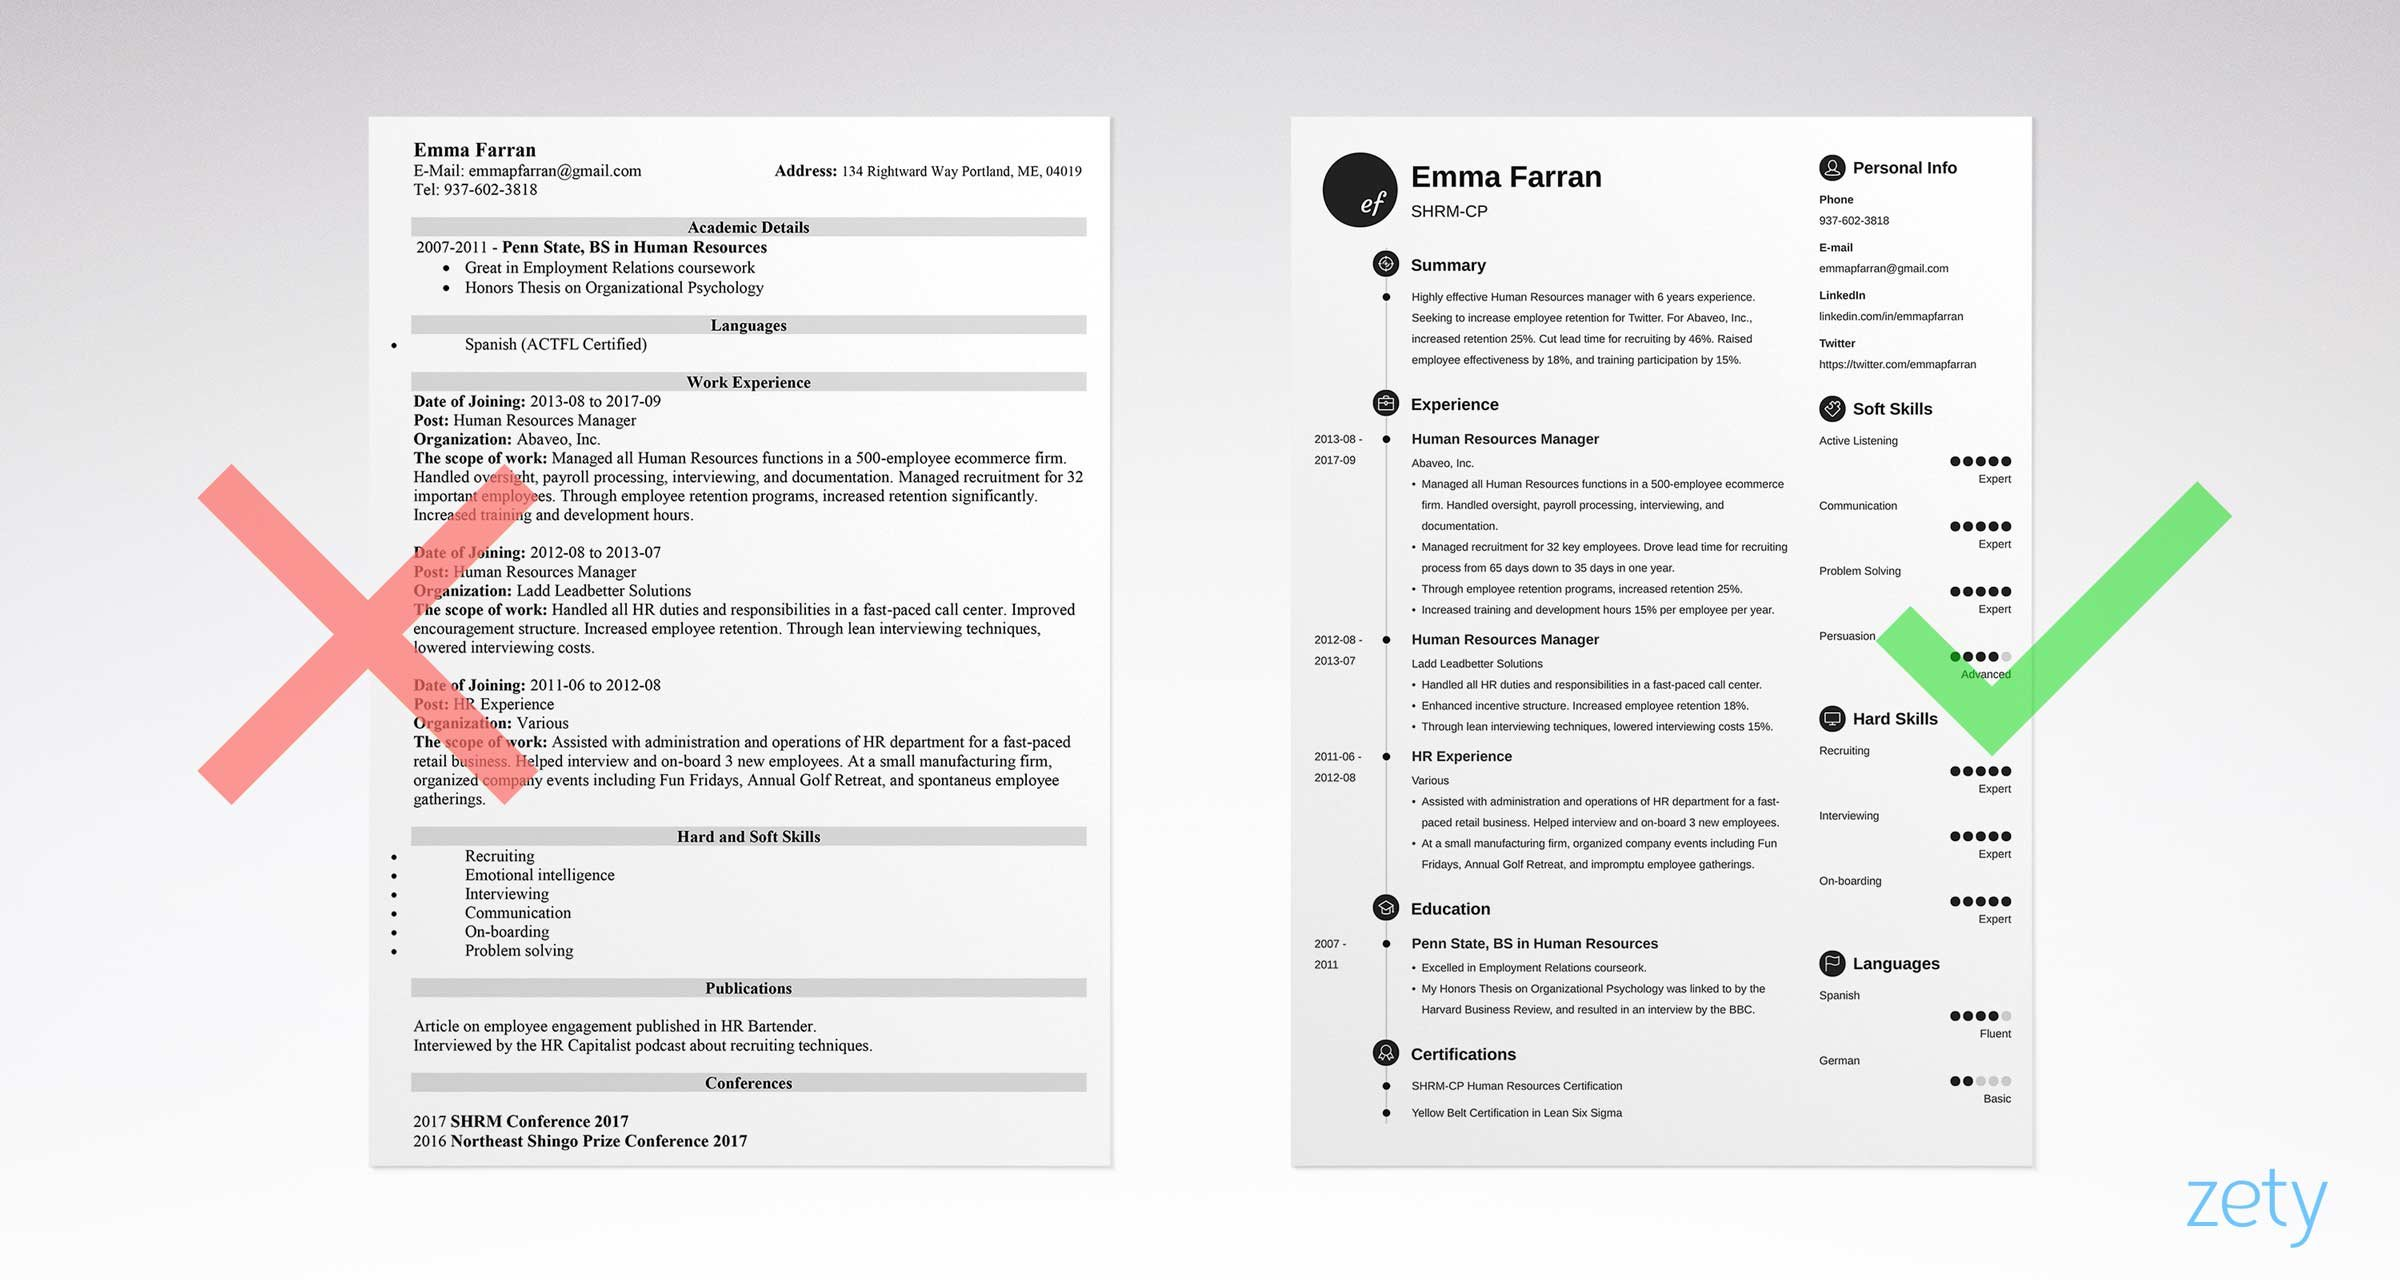 infographic resume templates examples builder roundup uh realtor skills listing udemy Resume Infographic Resume Download